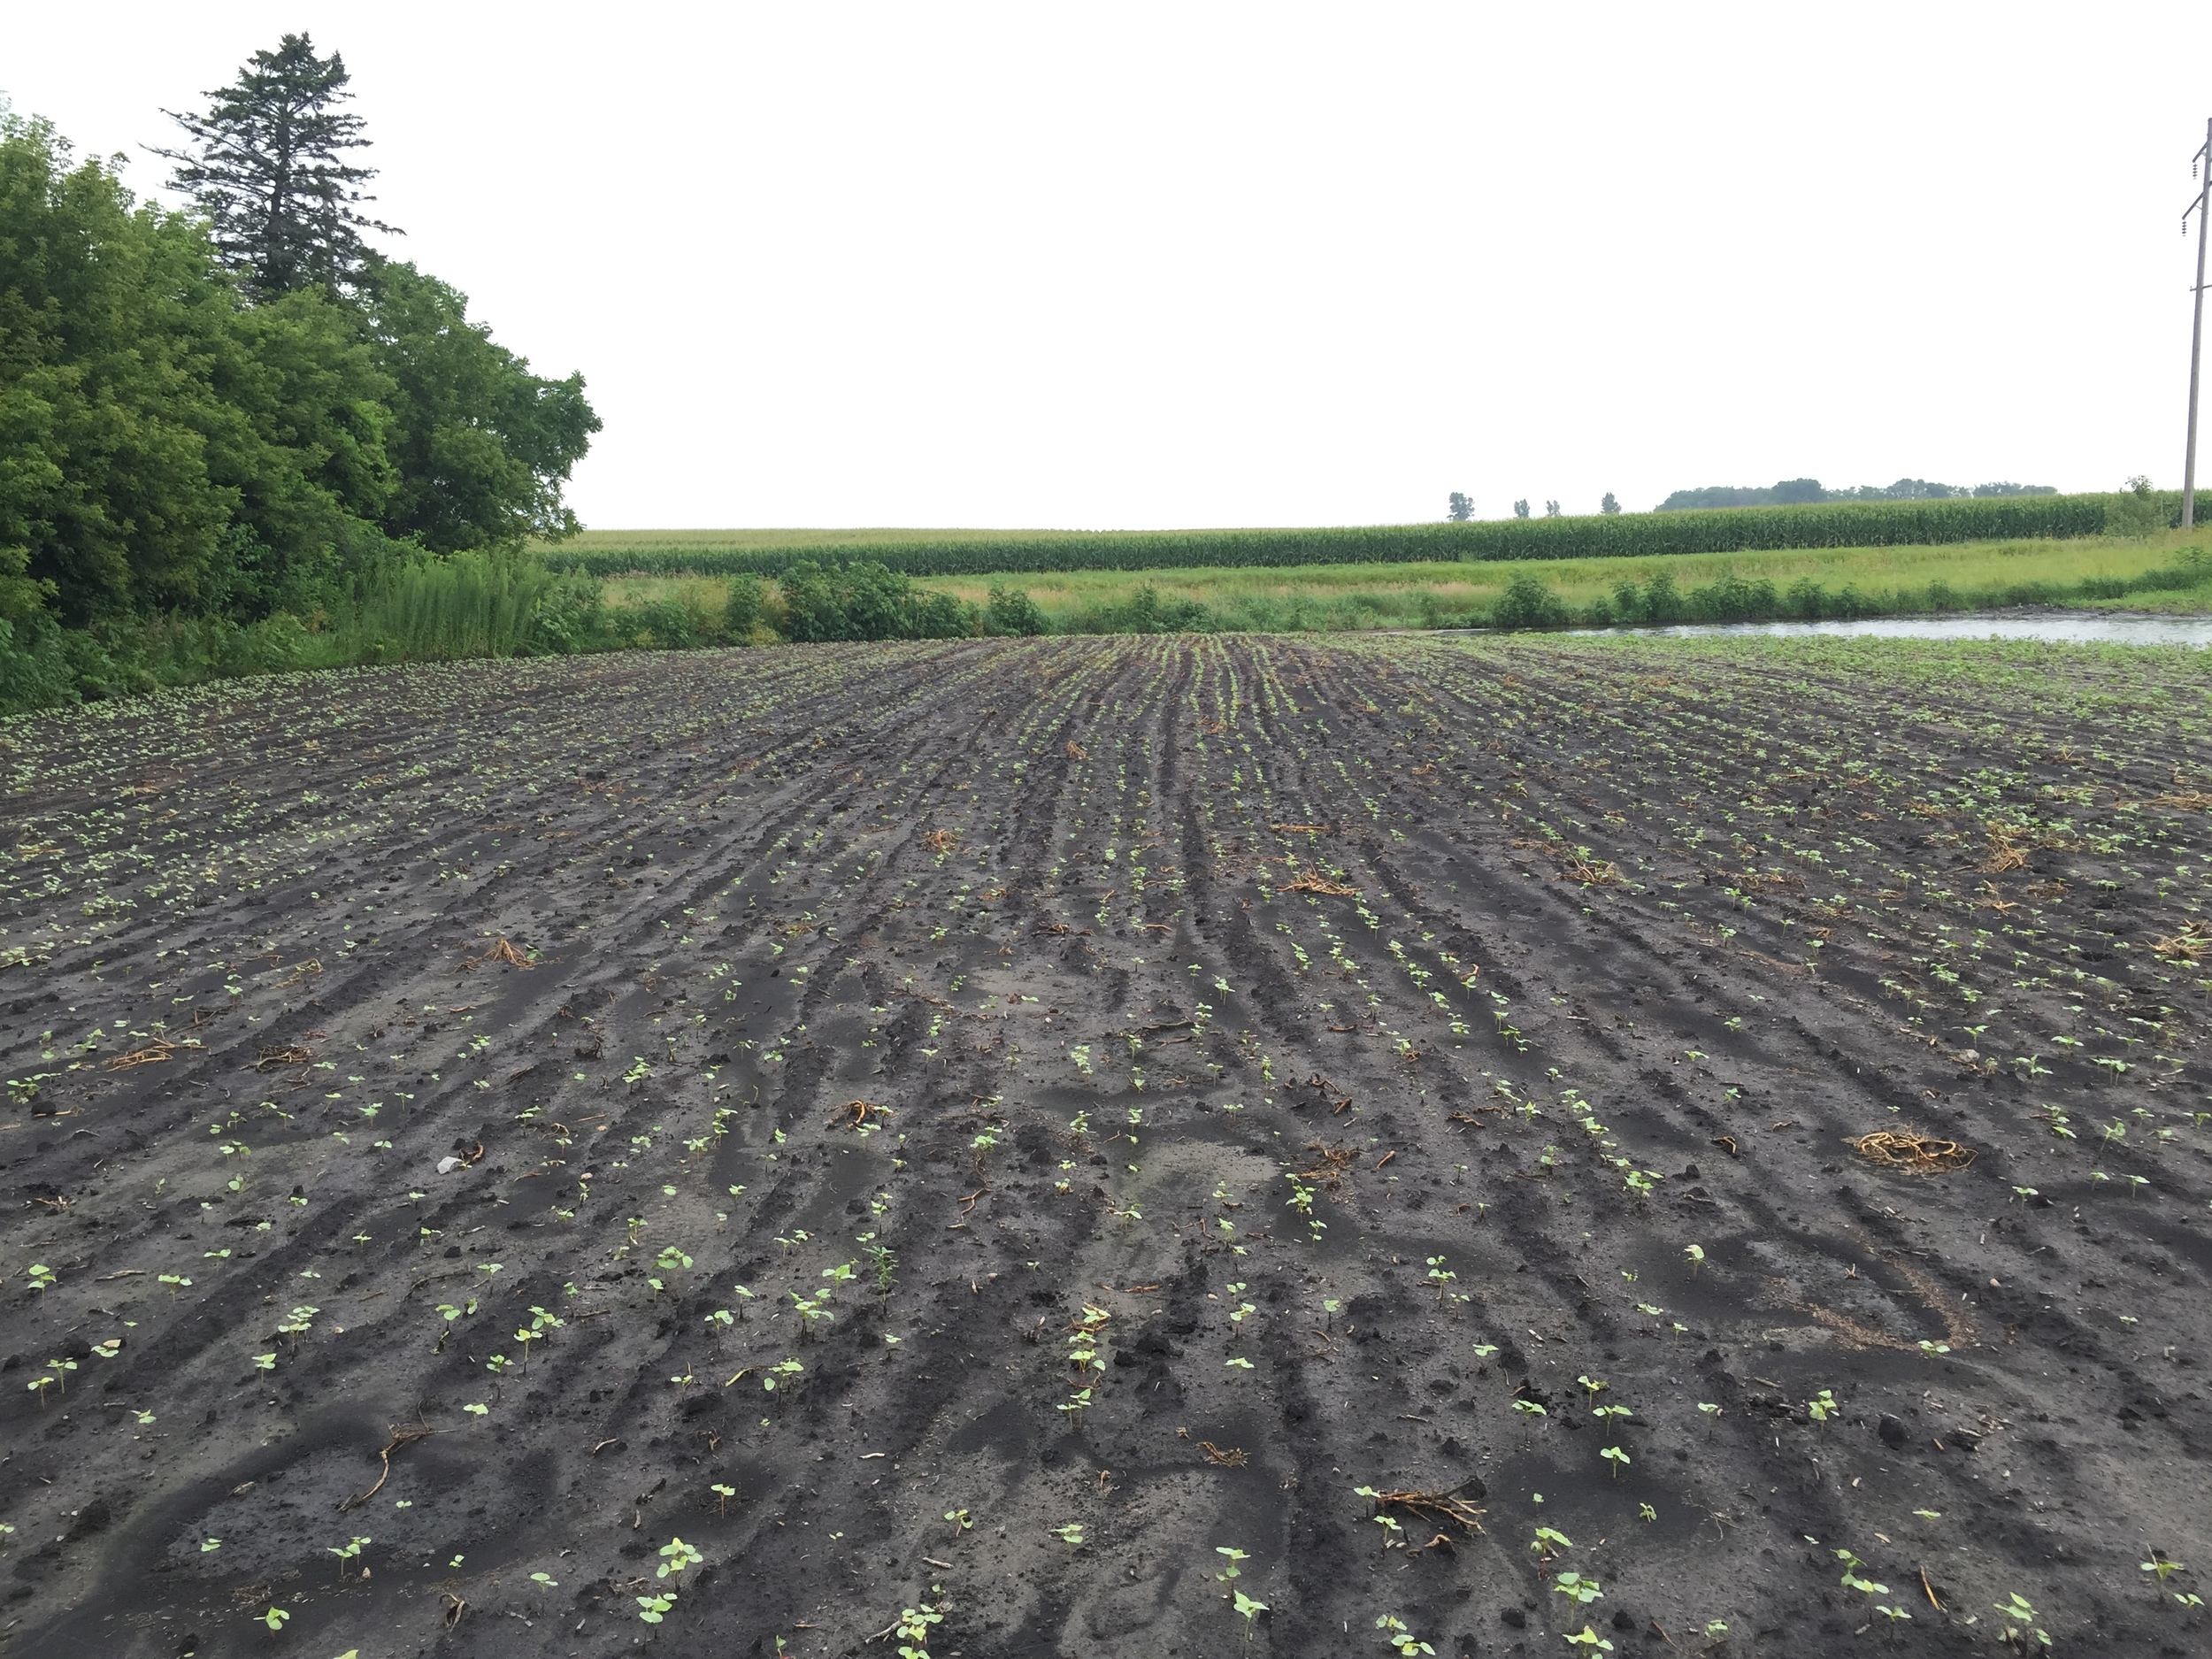 Cover crop emerging. This is baby buckwheat.